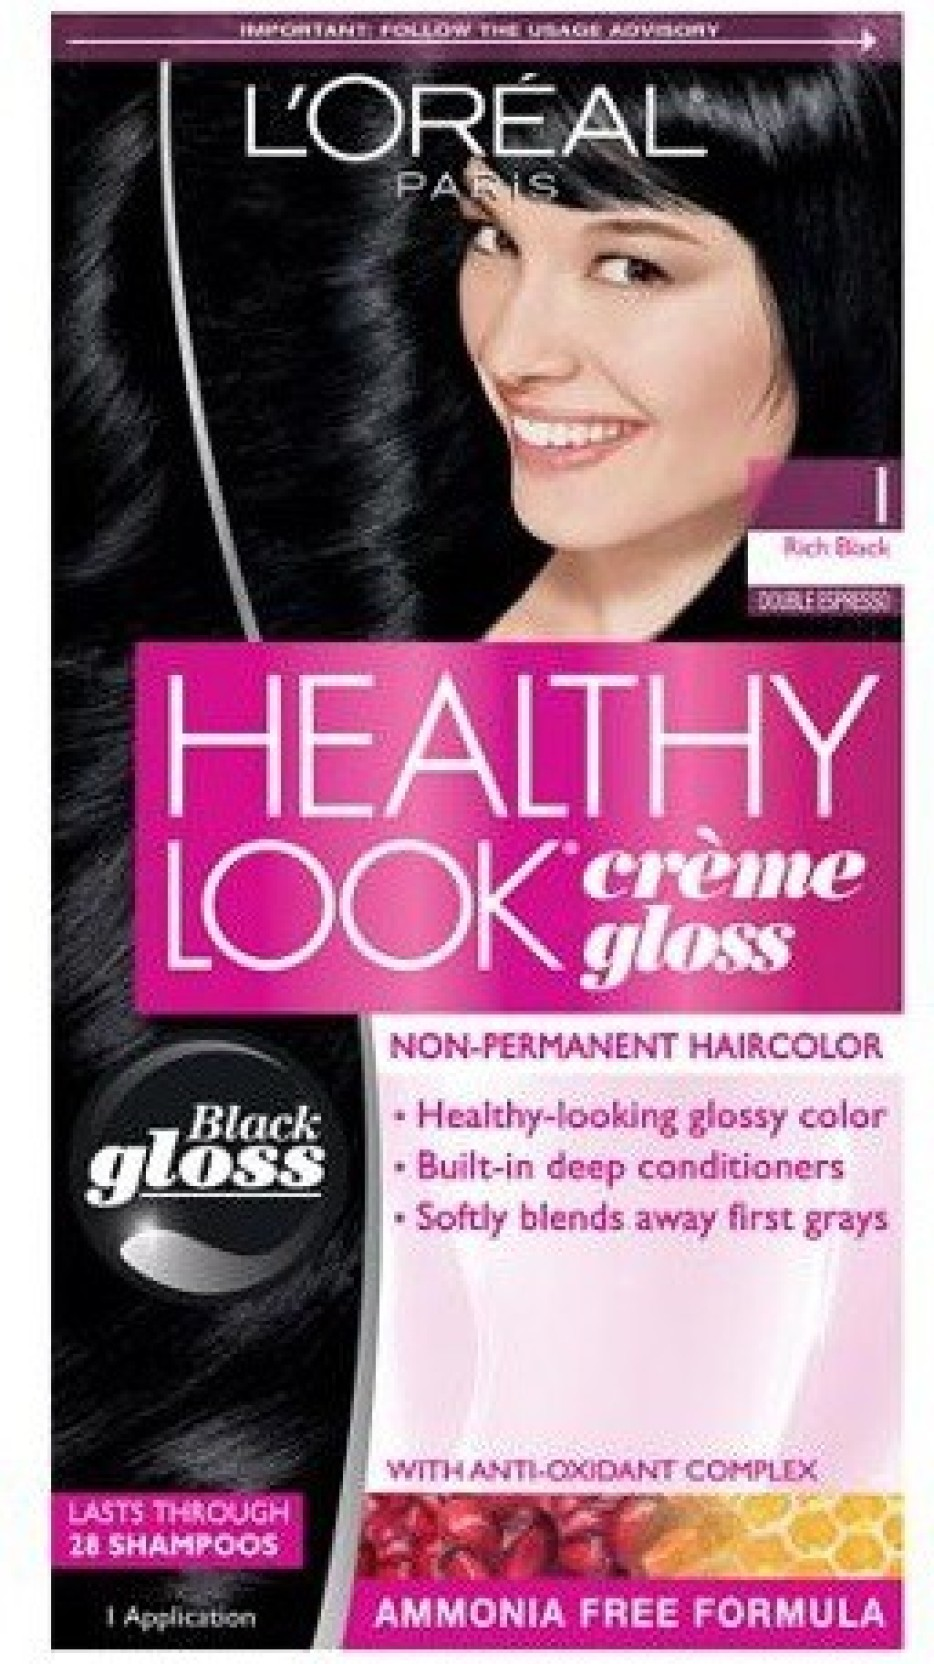 Loreal Paris Healthy Look Creme Gloss No Ammonia Hair Color